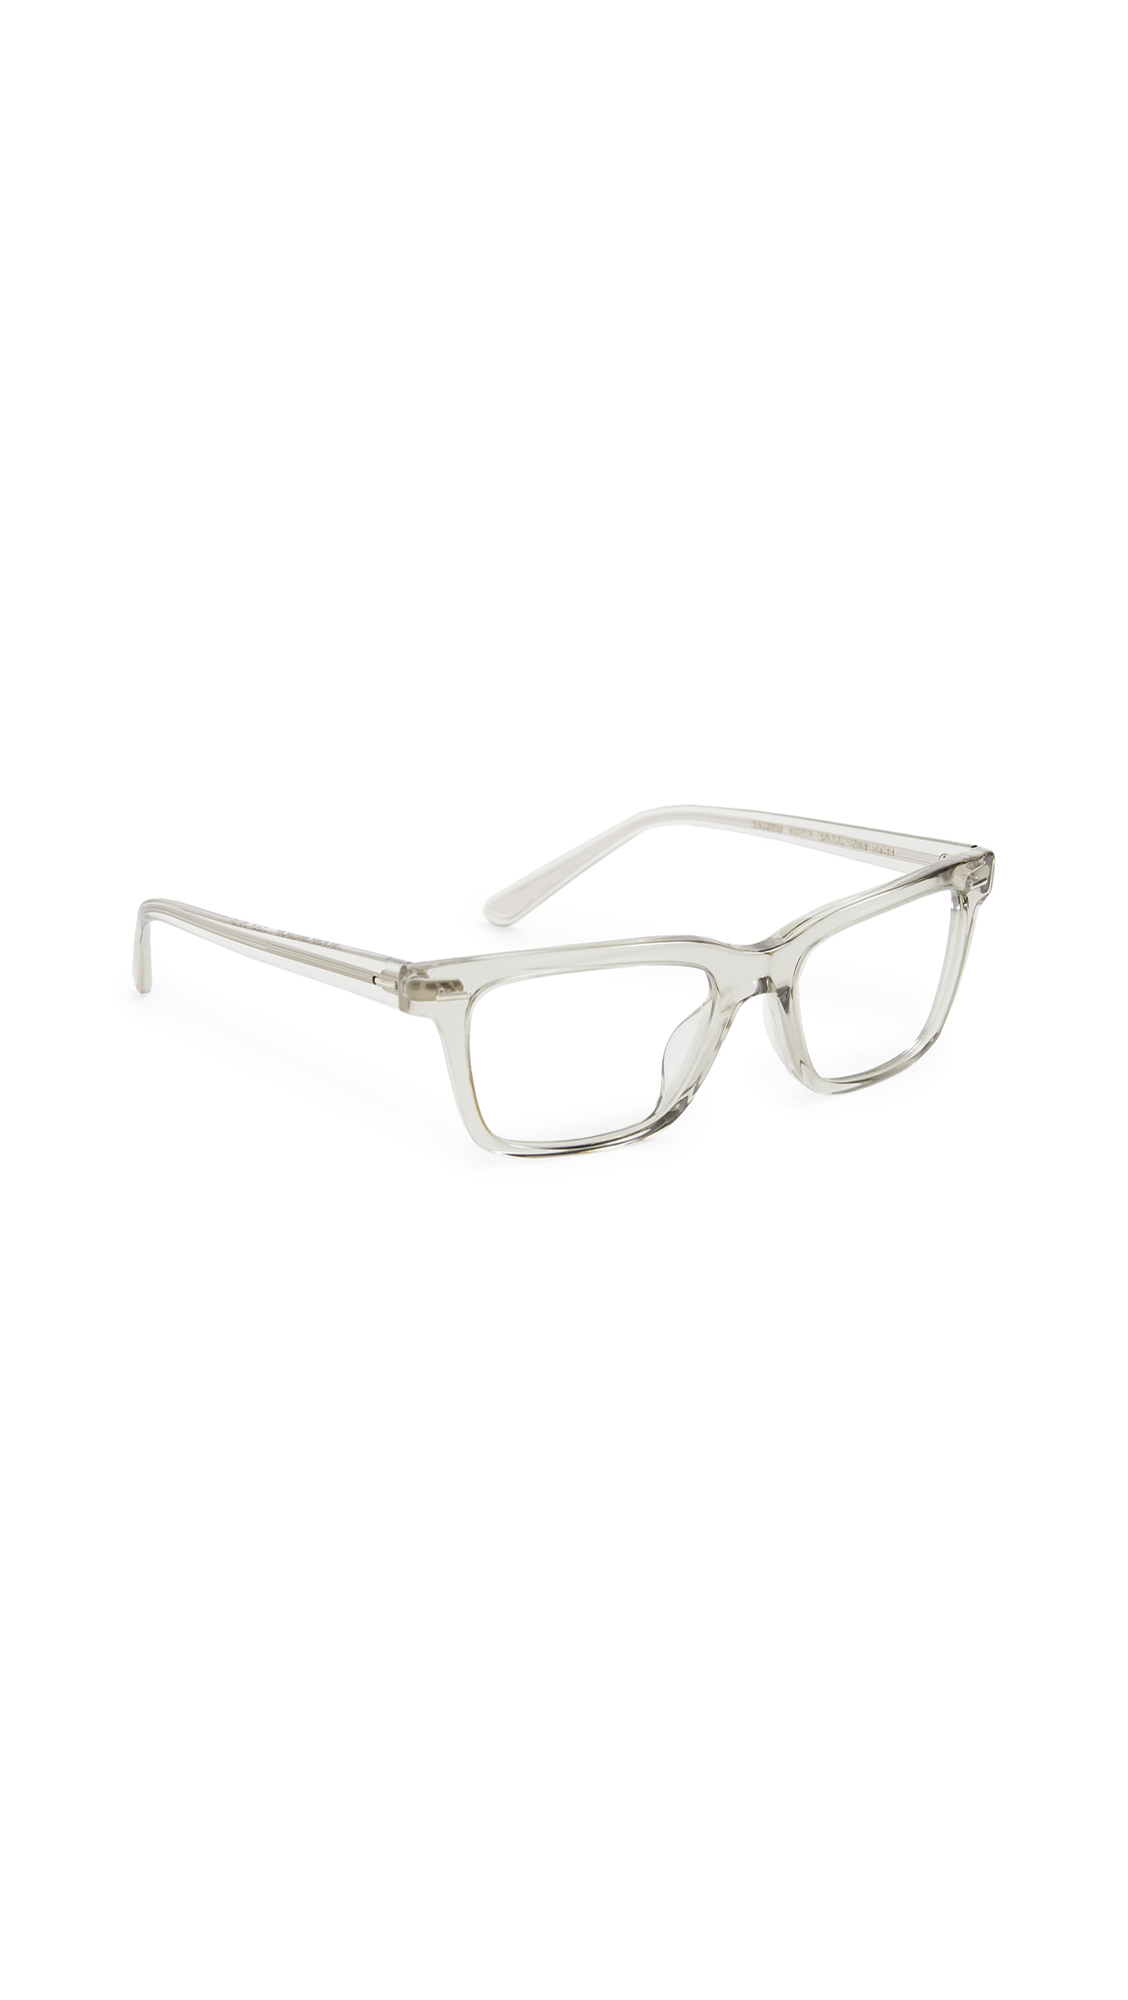 Oliver Peoples Ba Cc Glasses In Black Diamond